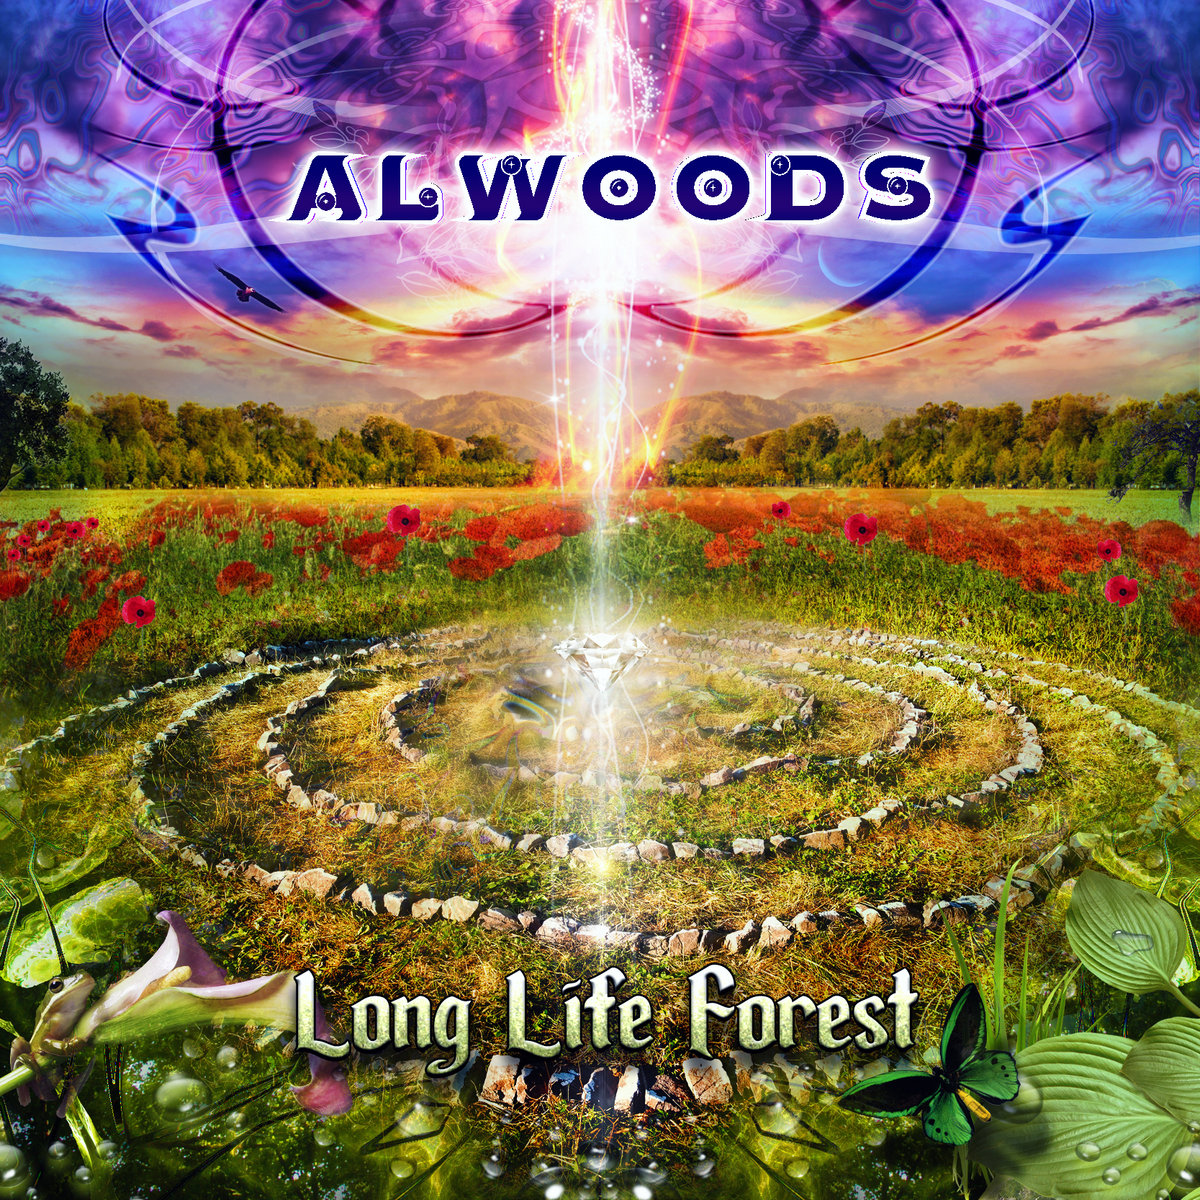 Long Life Forest | ALWOODS